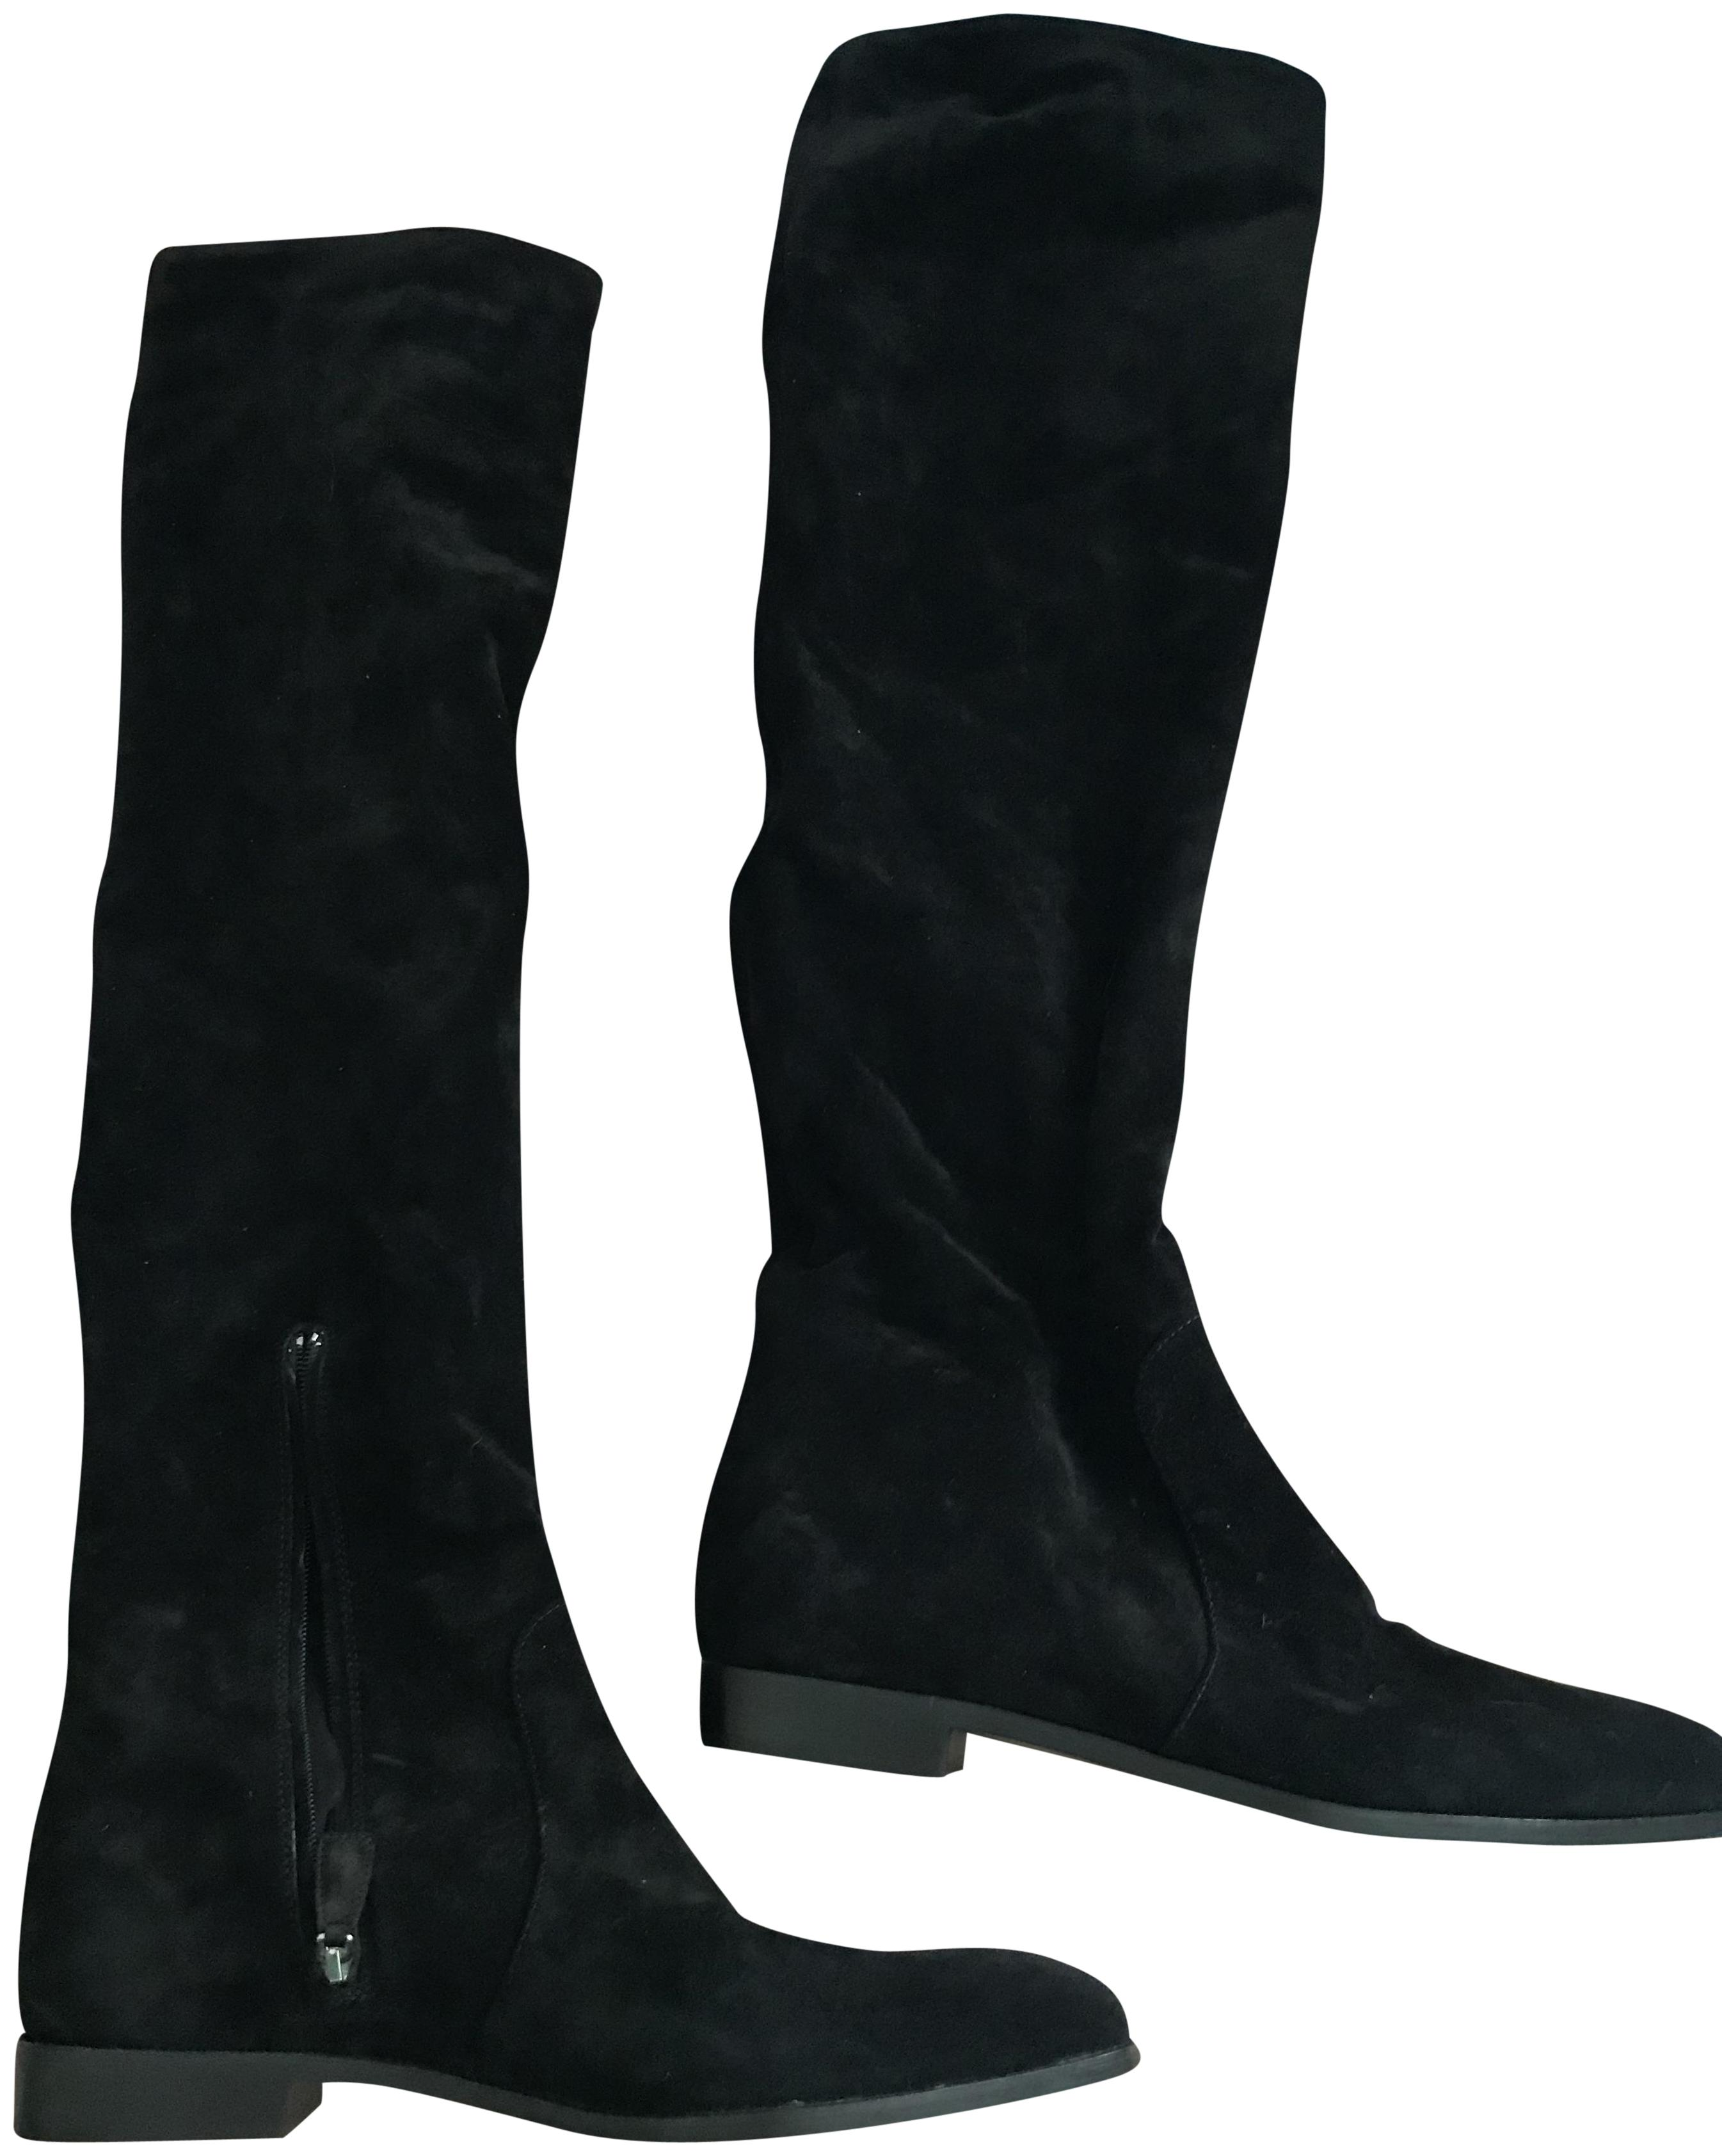 Prada Black Knee High Boots/Booties Size US 7.5 Regular (M, B)